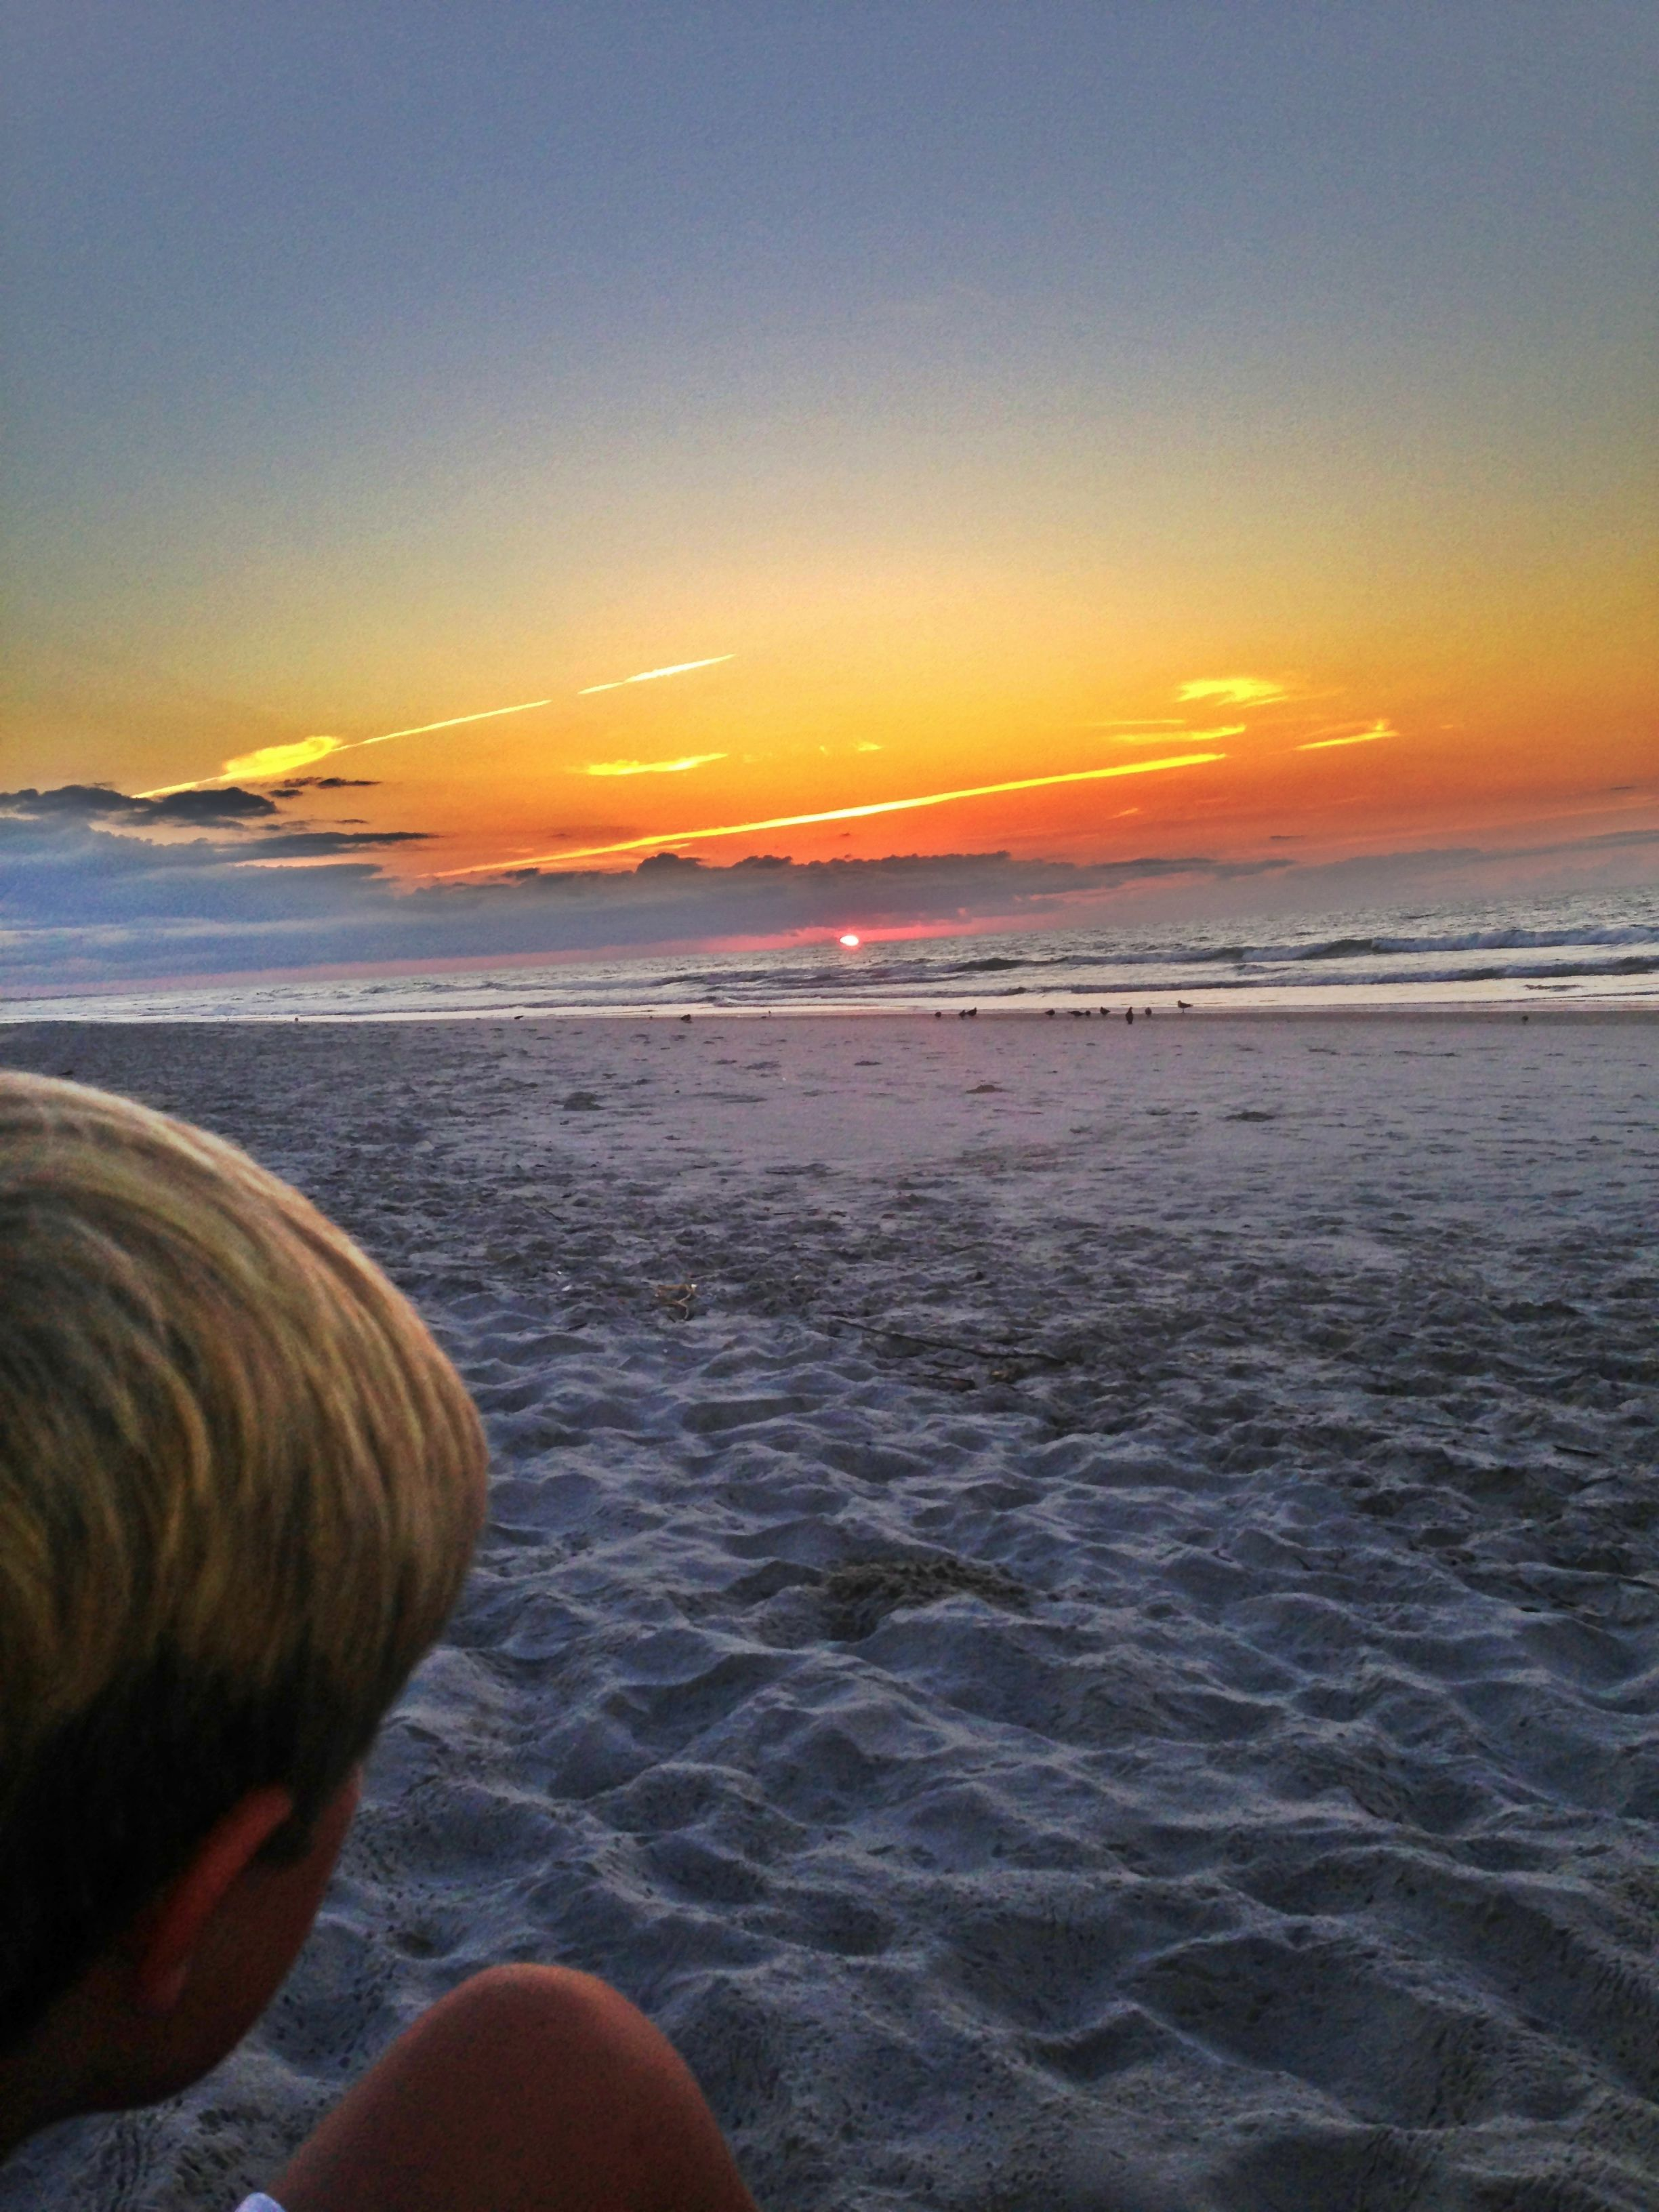 Grandson Max at sunrise on the beach!